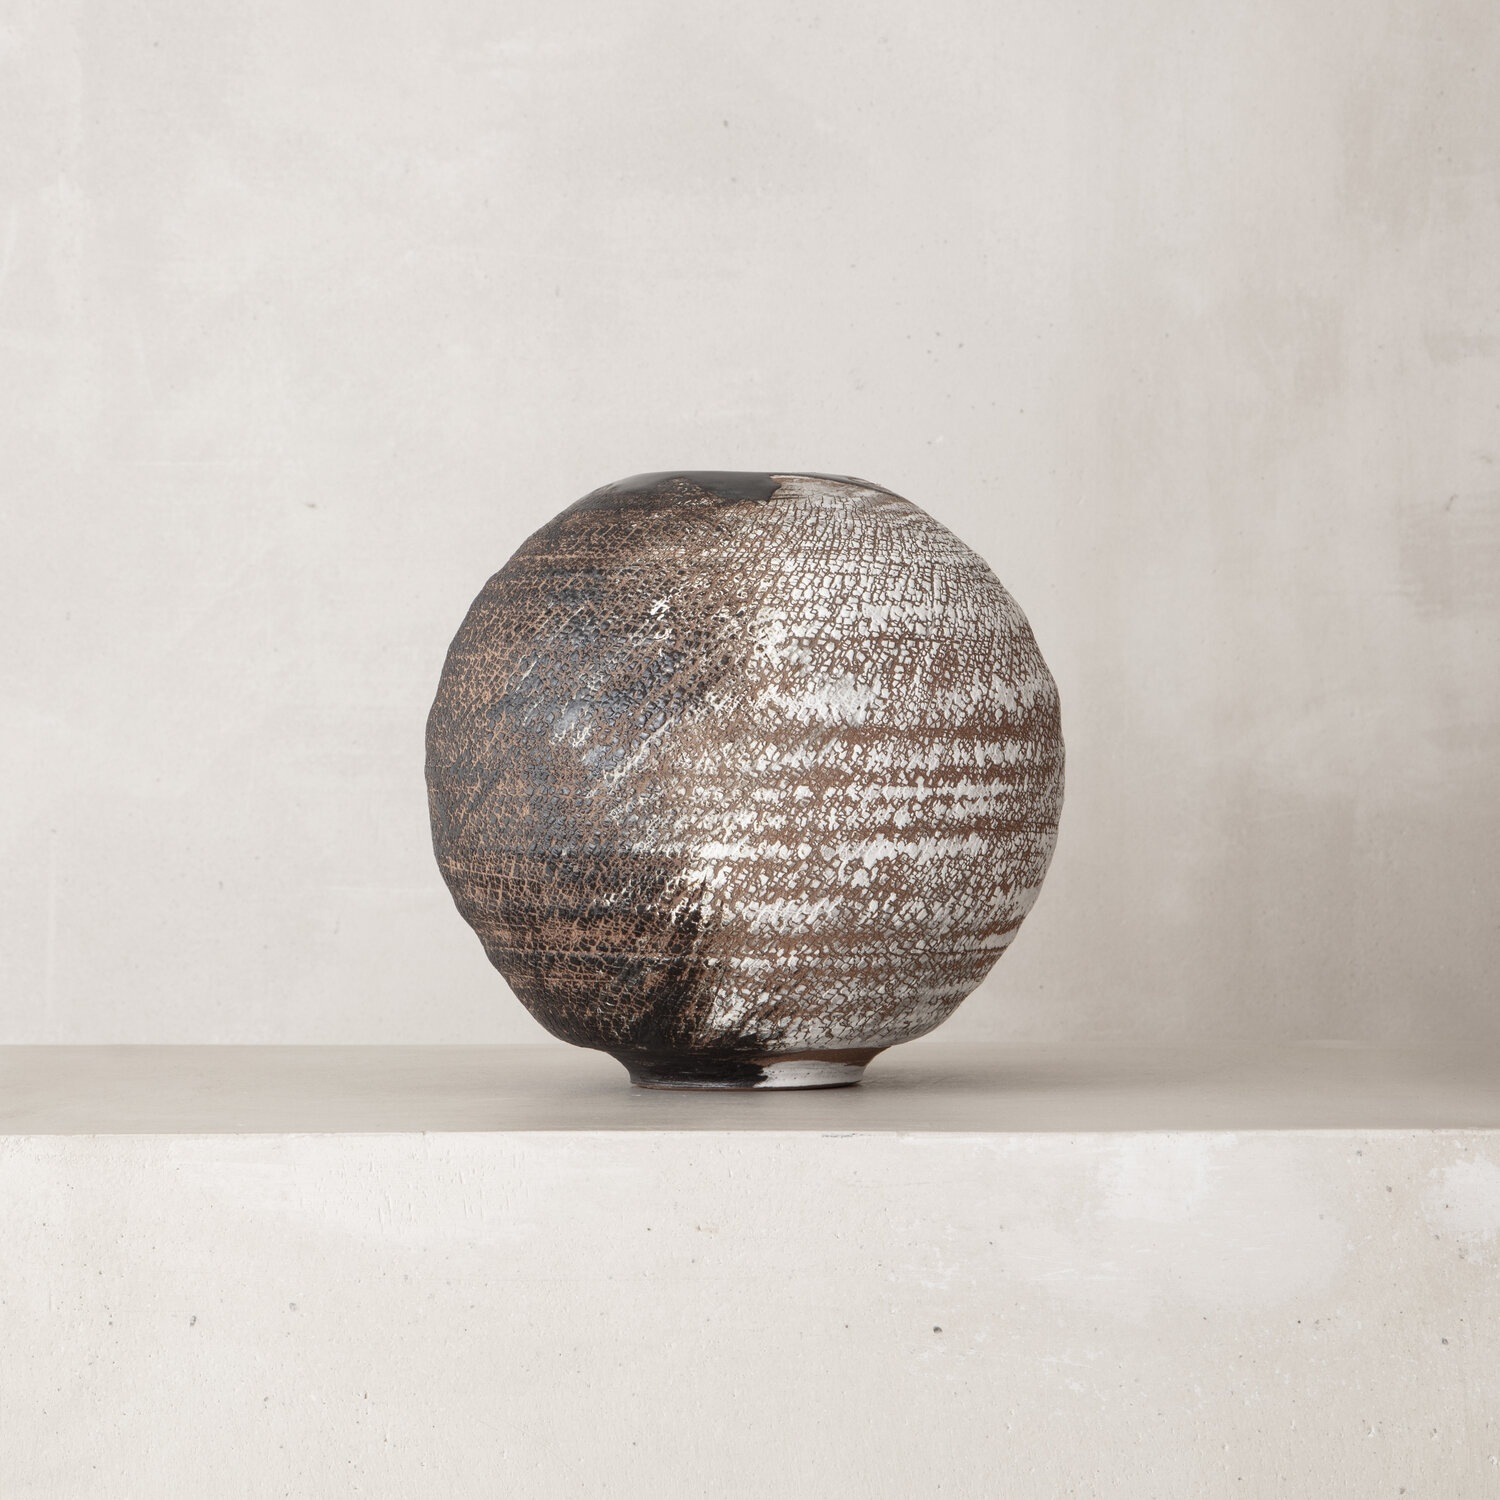 MOON PHASE VESSEL   PSP056Peter Speliopoulos, Peter Speliopoulos Ceramics, Peter Speliopoulos Artist, Peter Speliopoulos Fashion Designer, Contemporary Ceramics, Contemporary Greek Ceramics, Interior Design Accessories.